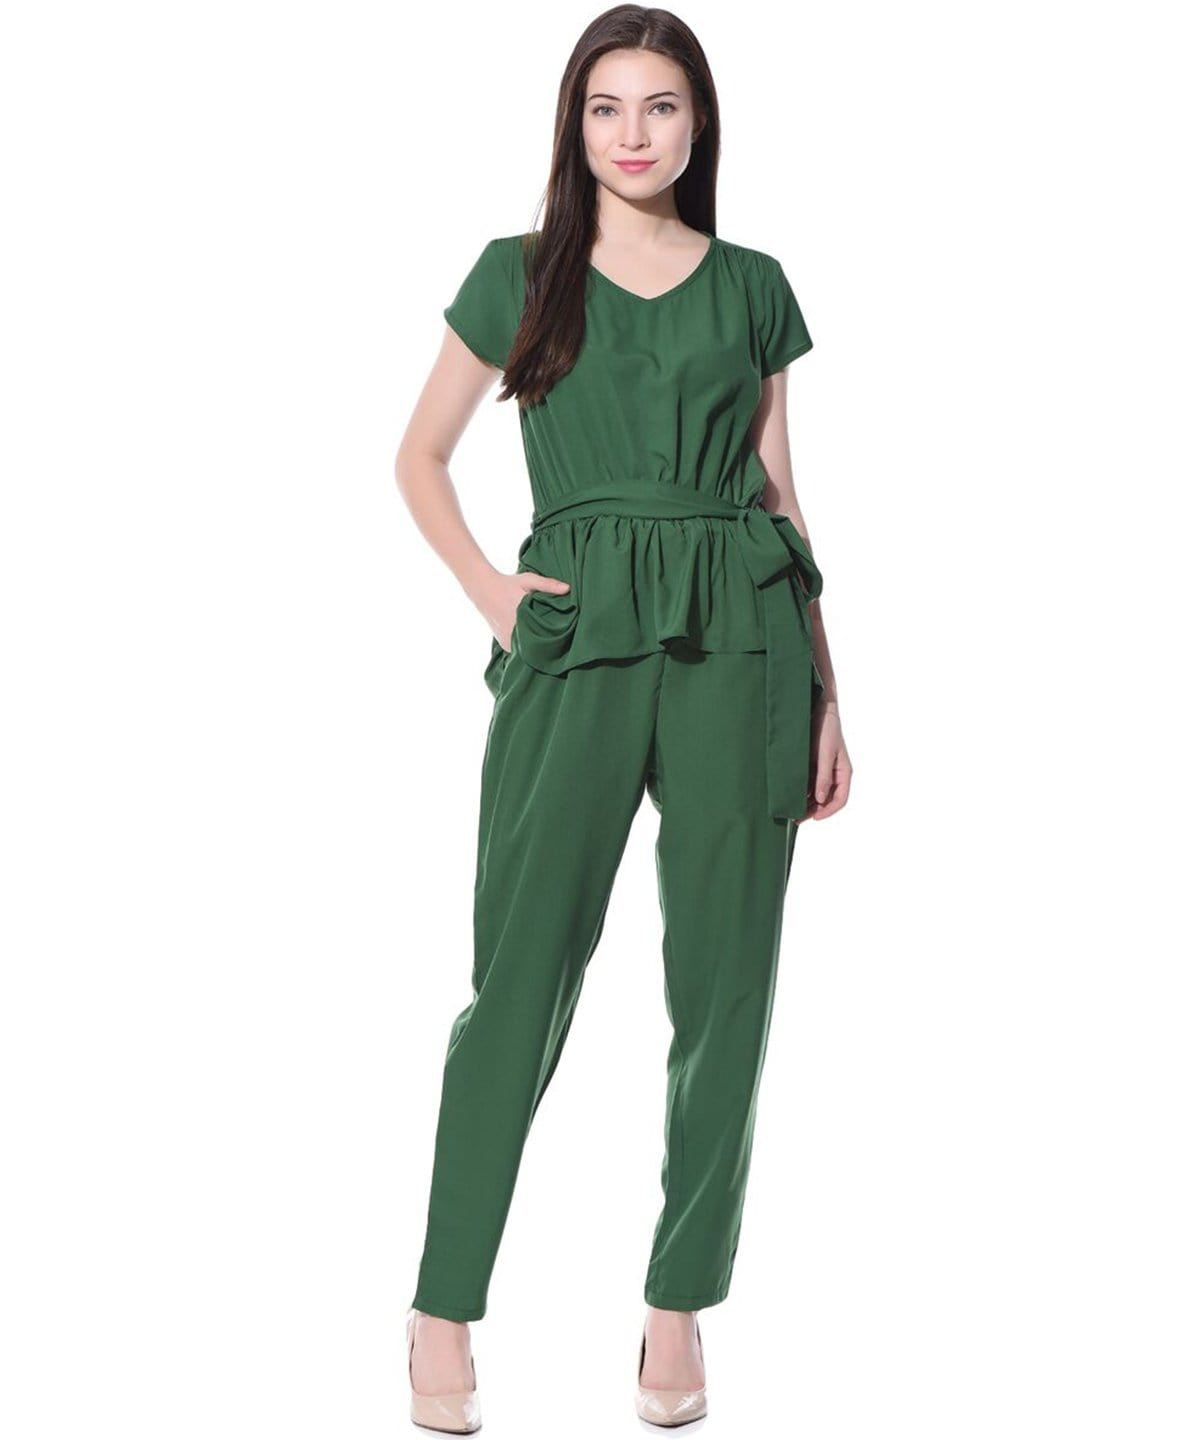 Green Solid Peplum Jumpsuit - Uptownie